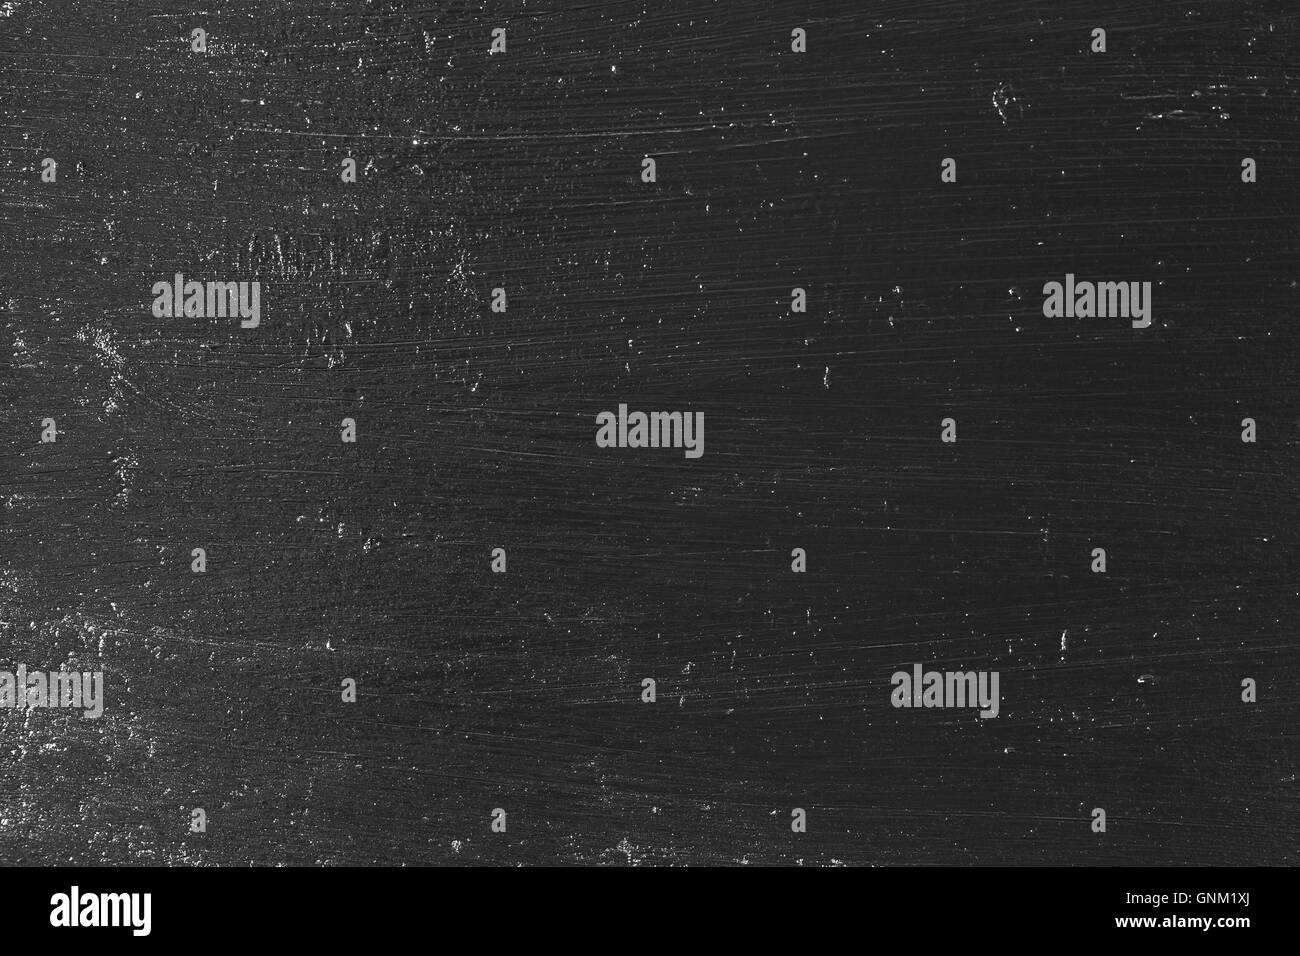 seamless black wall texture. Black Wall Textured Empty Design. Background Image - Stock Seamless Texture